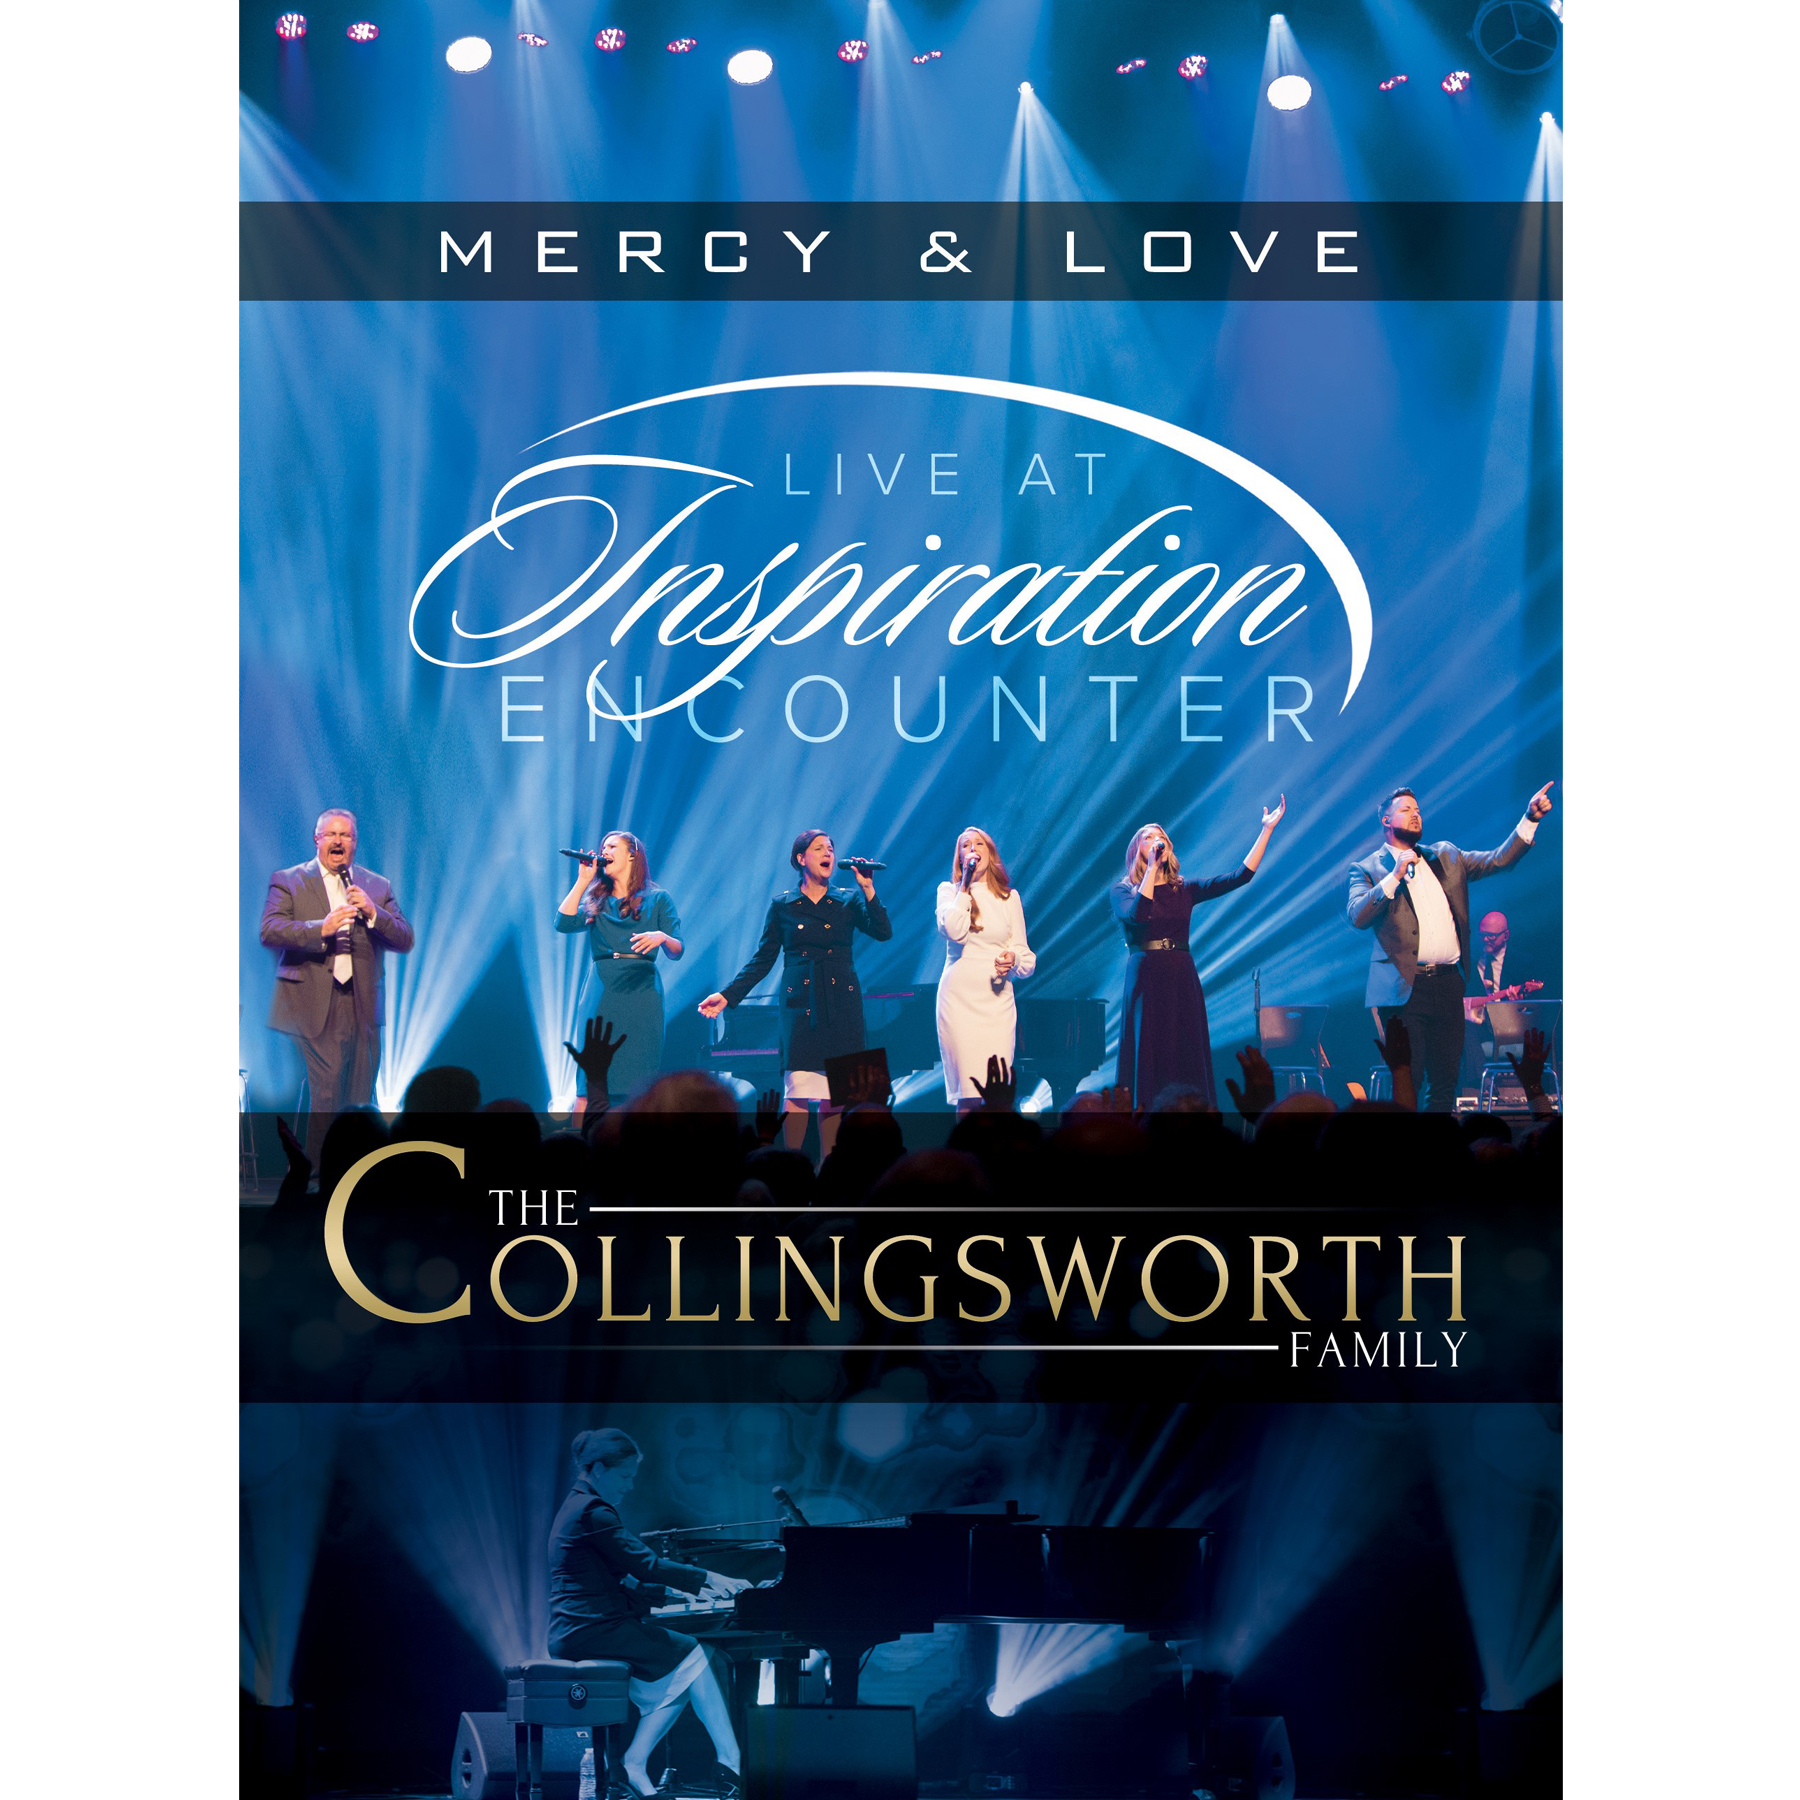 The Collingsworth Family Releases Highly Anticipated Live Concert DVD thumbnail